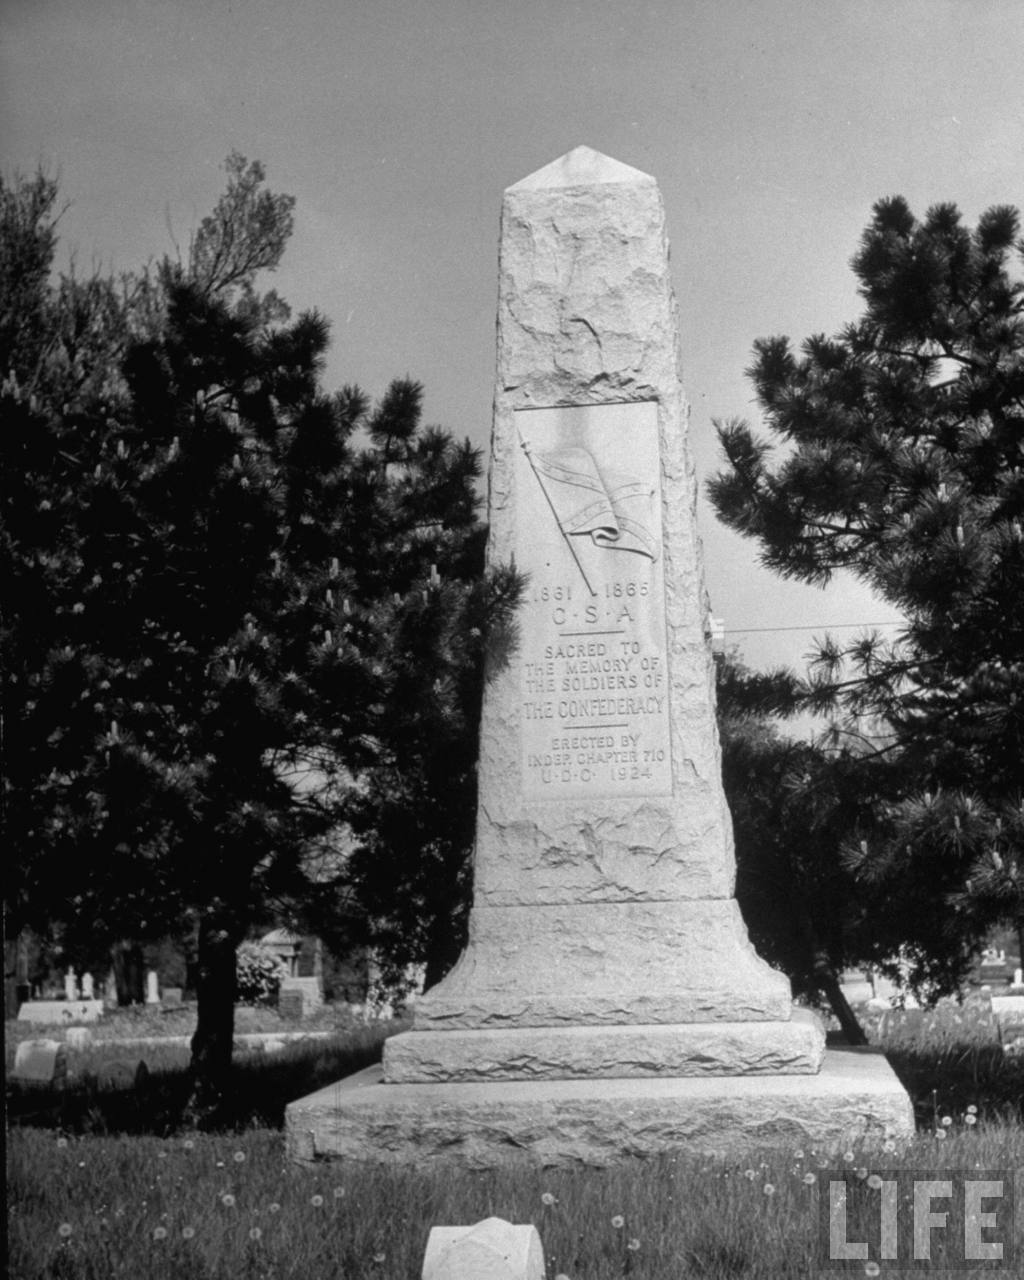 Confederate monument with Stars and Bars dedicated to the memory of the soldiers of the Confederacy, in Woodlawn Cemetery (from photo essay re Harry Truman's Missouri).